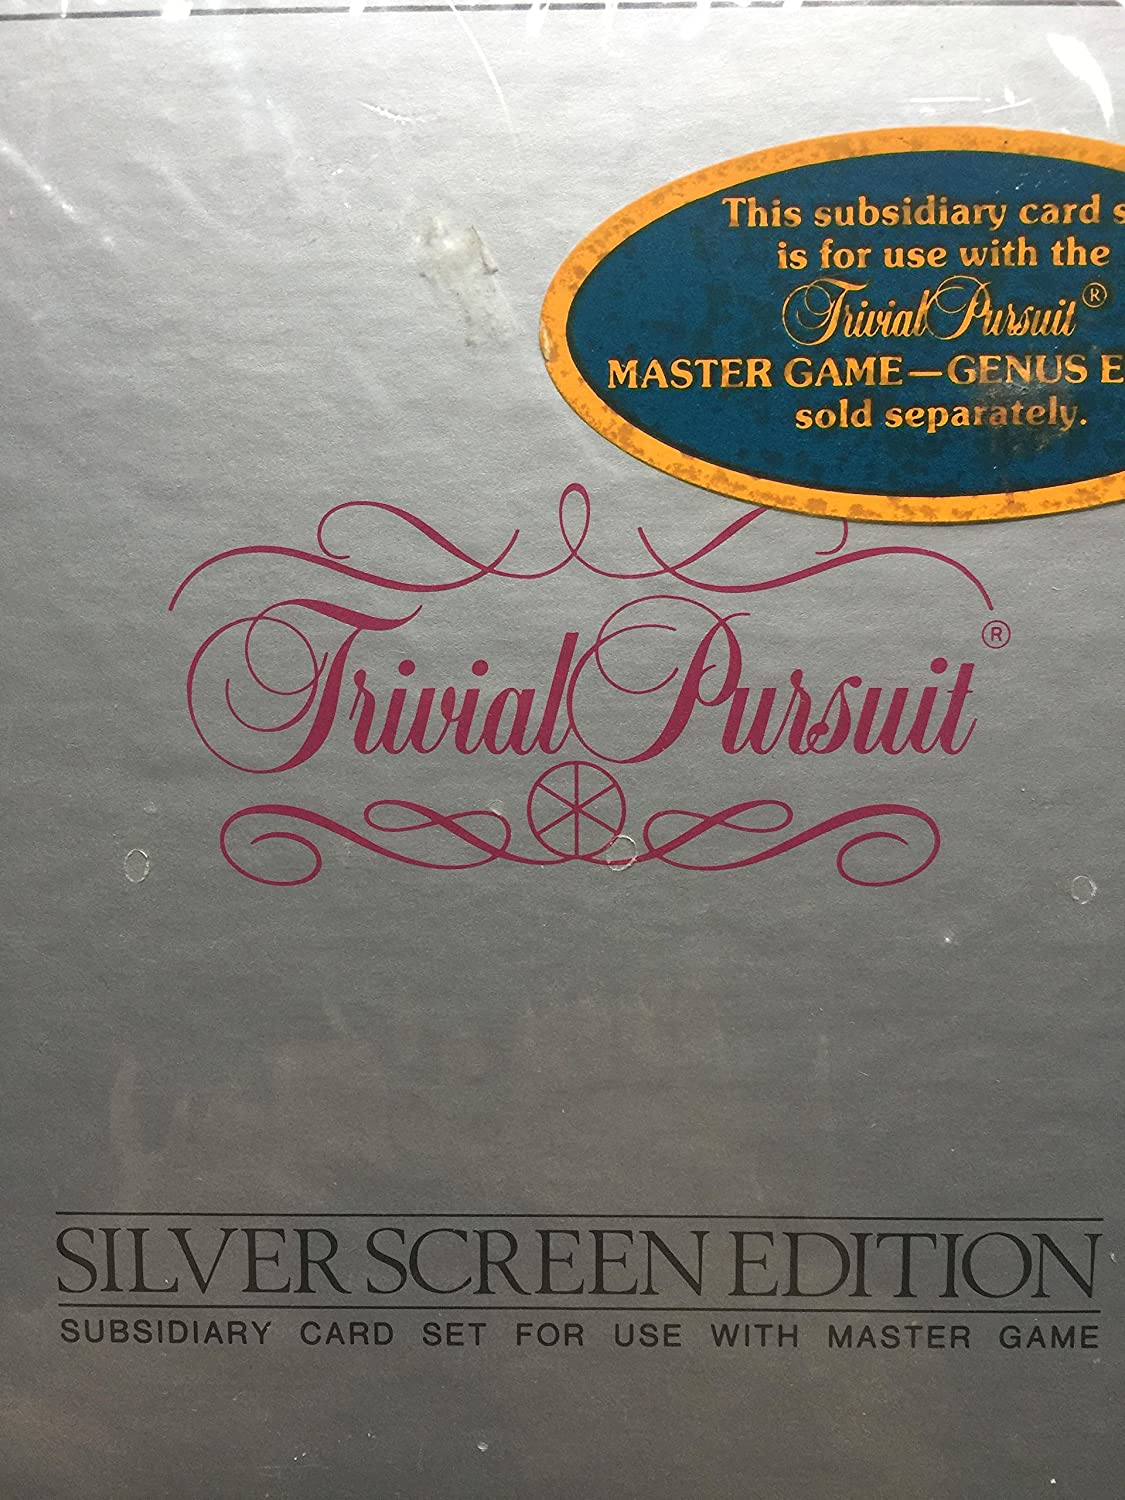 Parker Bredhers Trivial Pursuit Silver Screen Edition subsidiary Card Set